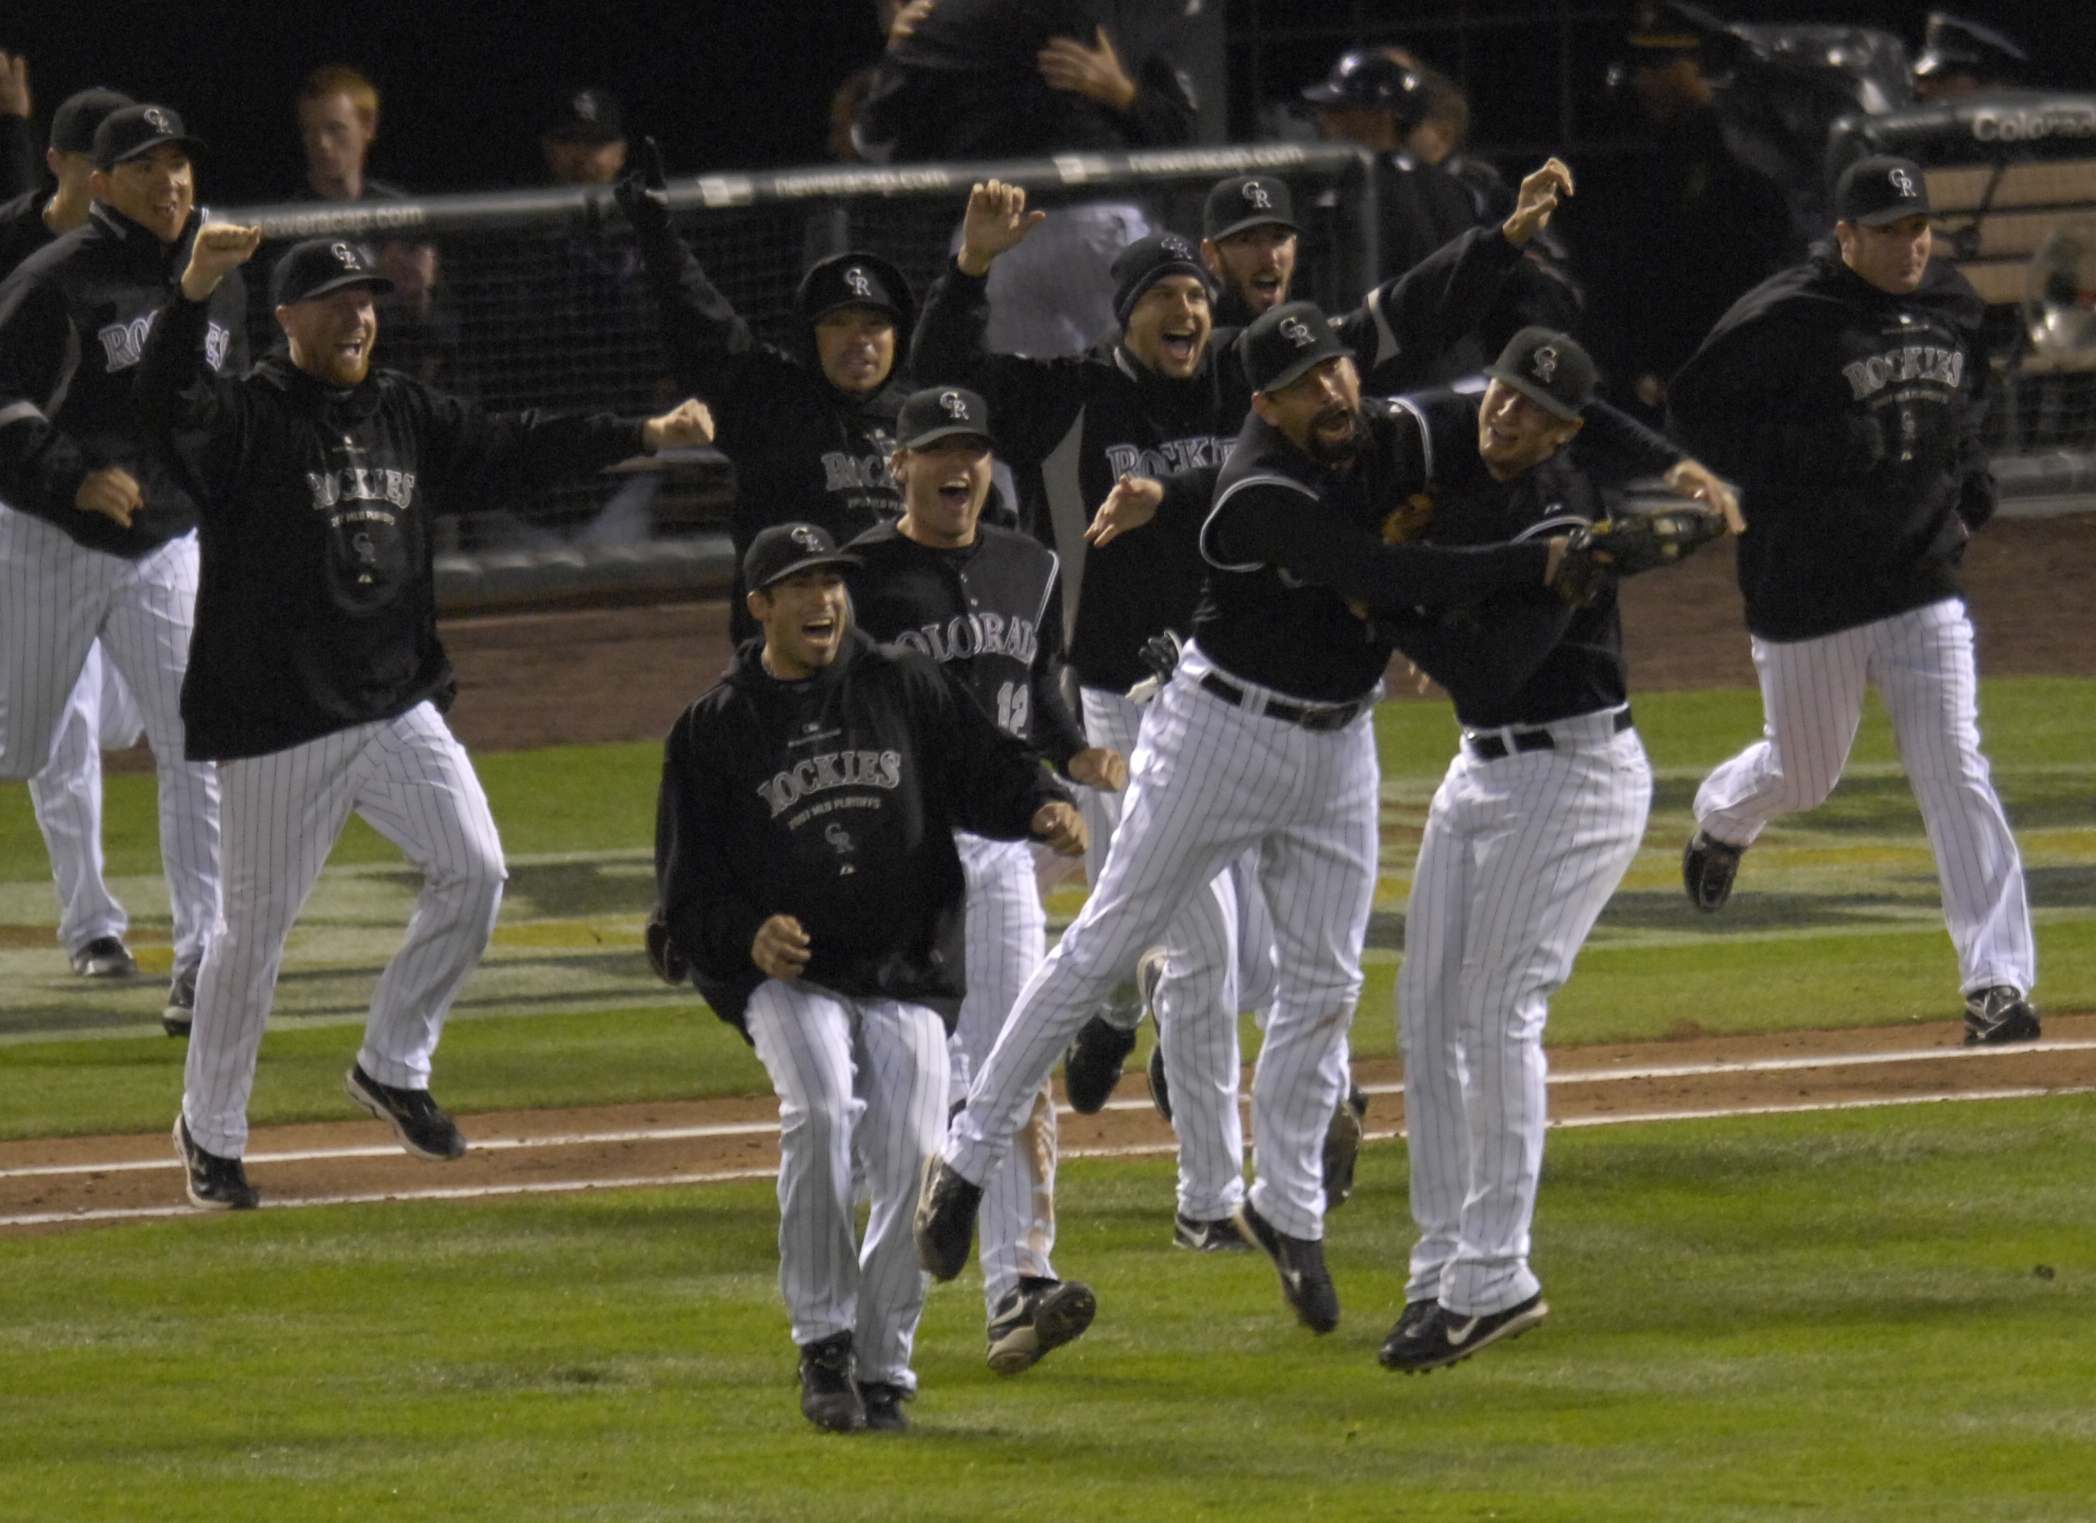 10.15.2007 — Colorado Rockies Todd Helton grabs on to short stop Troy Tulowitzki as the two celebrate after winning 6-4 in game 4 the National League Championship series between the Colorado Rockies and Arizona Diamondbacks Monday, Oct. 15, 2007 at Coors